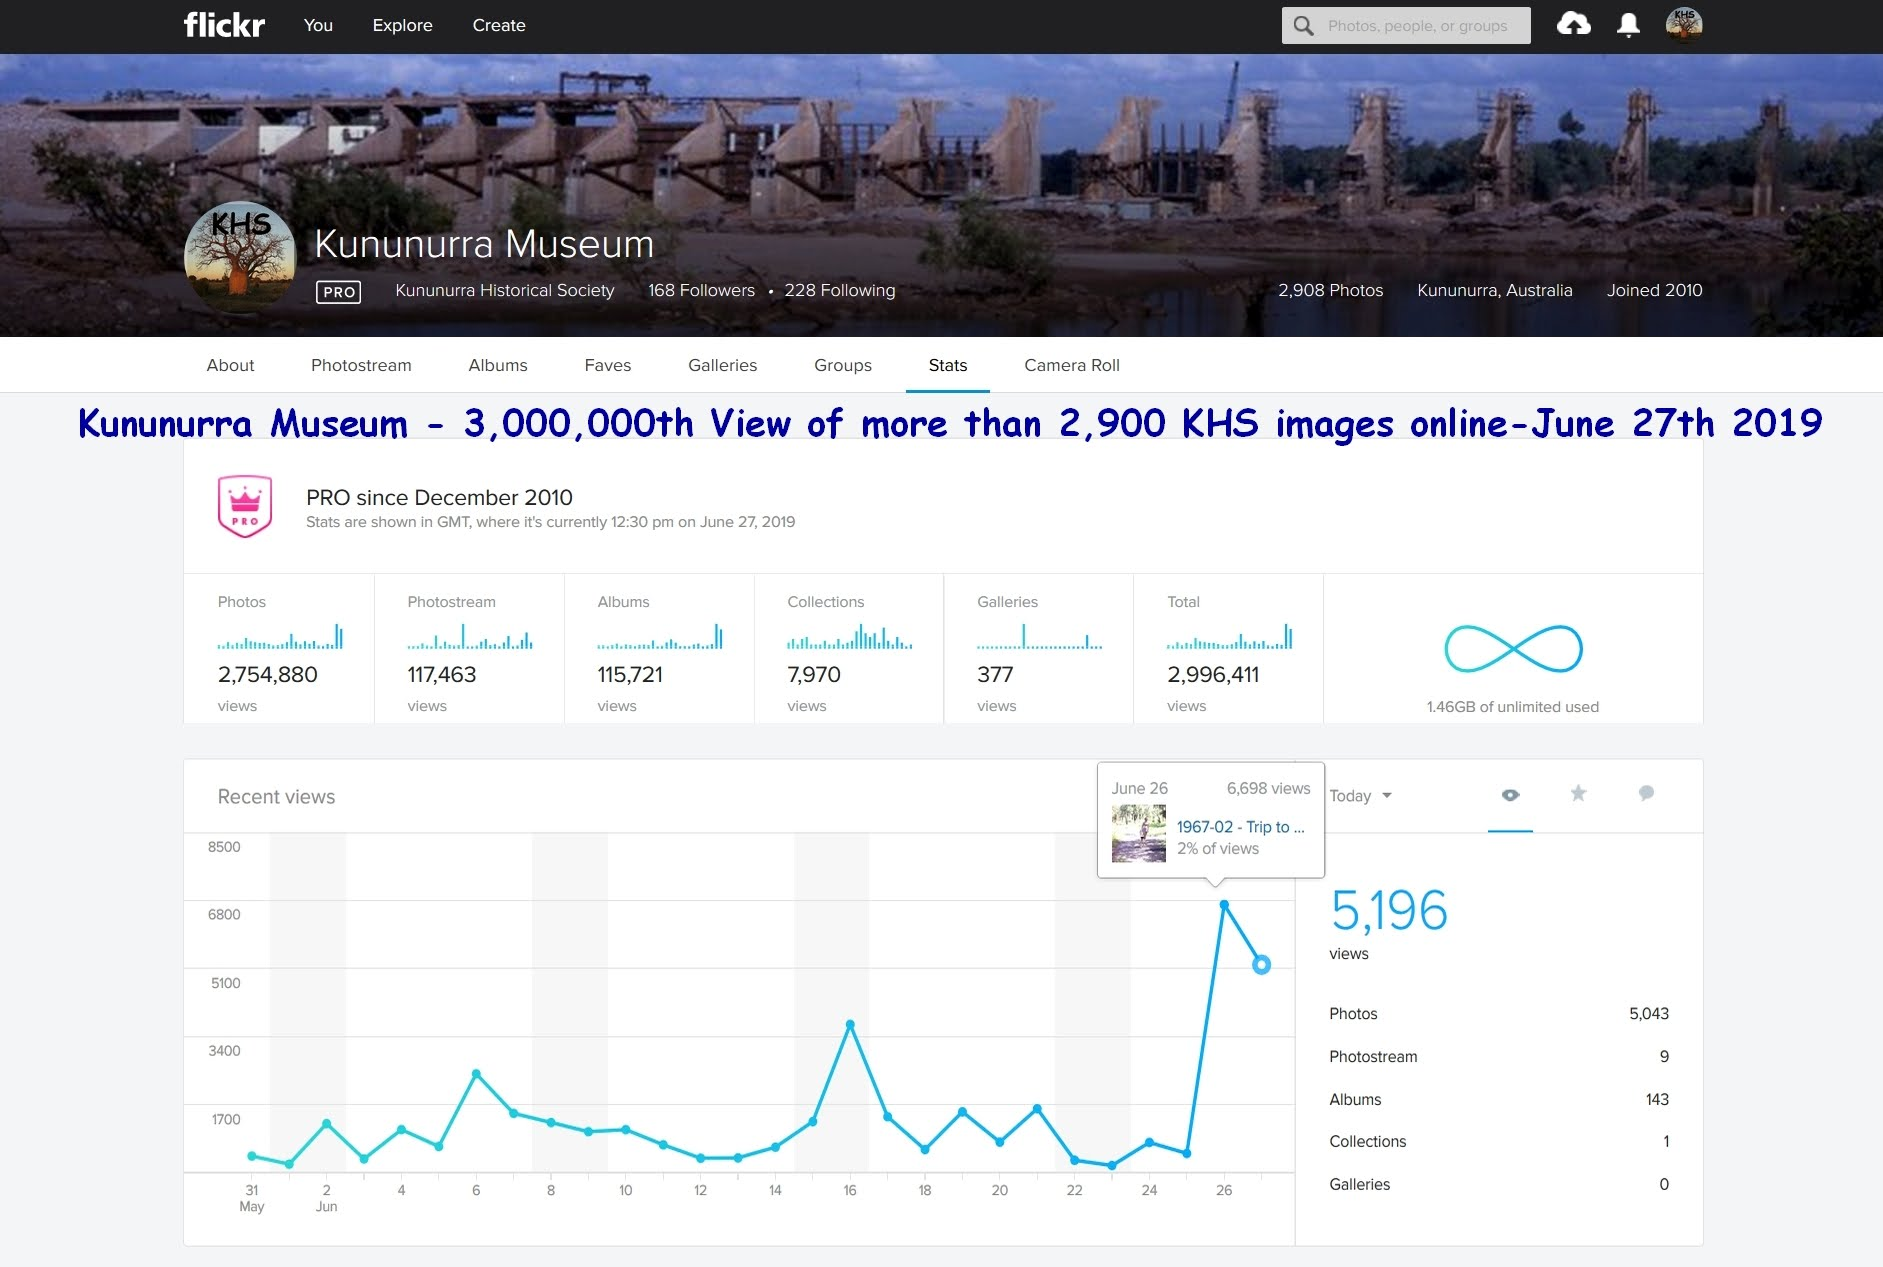 Screenshot of a graph showing KHS statistics - 3,000,000 Views of KHS images